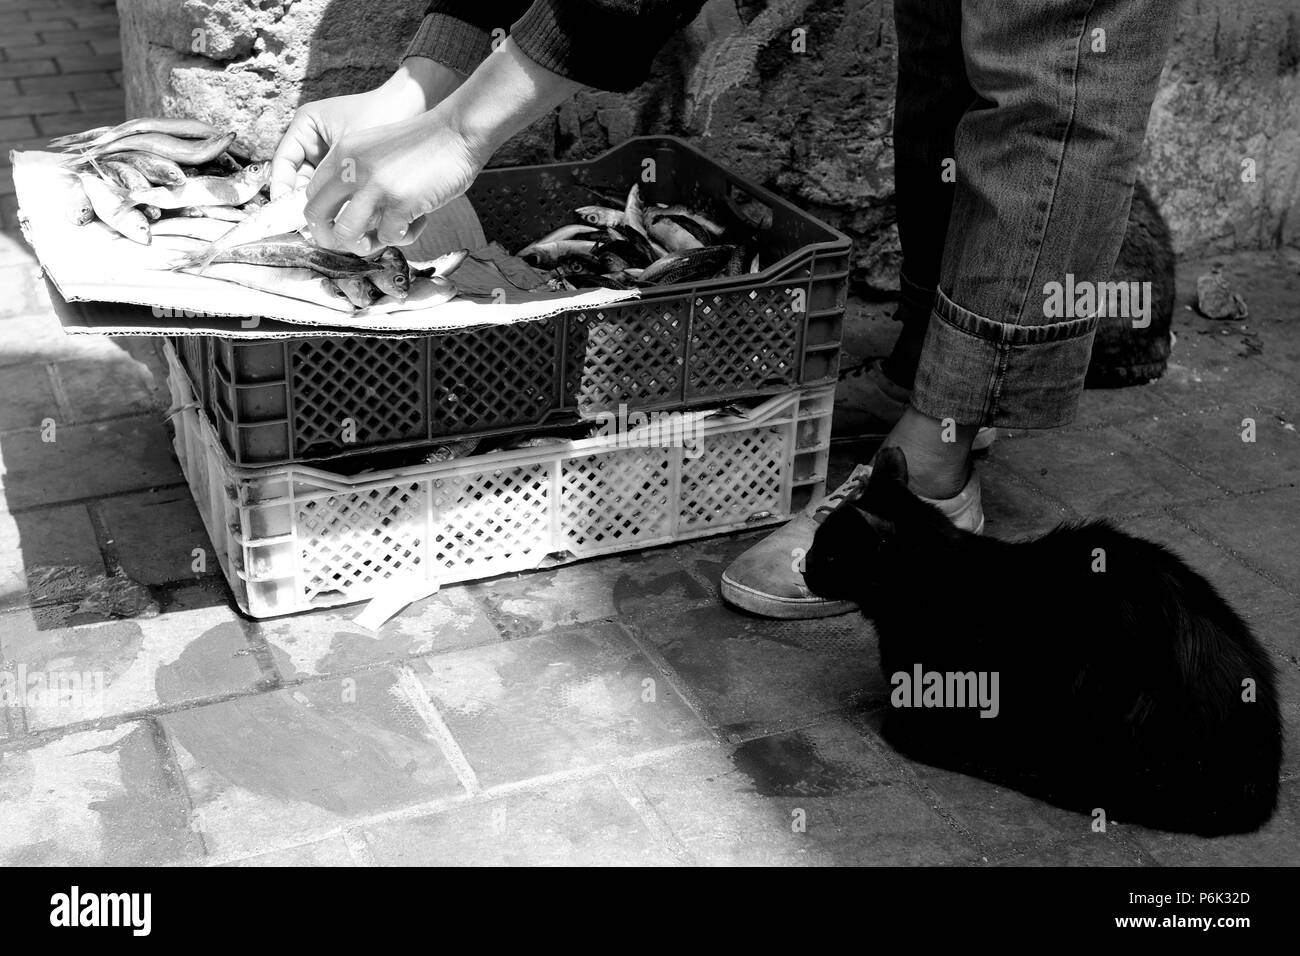 B&W close up of black cat sitting watching longingly as man seen knees down only arranges fresh fish for sale on crate in street, Essaouira, Morocco - Stock Image